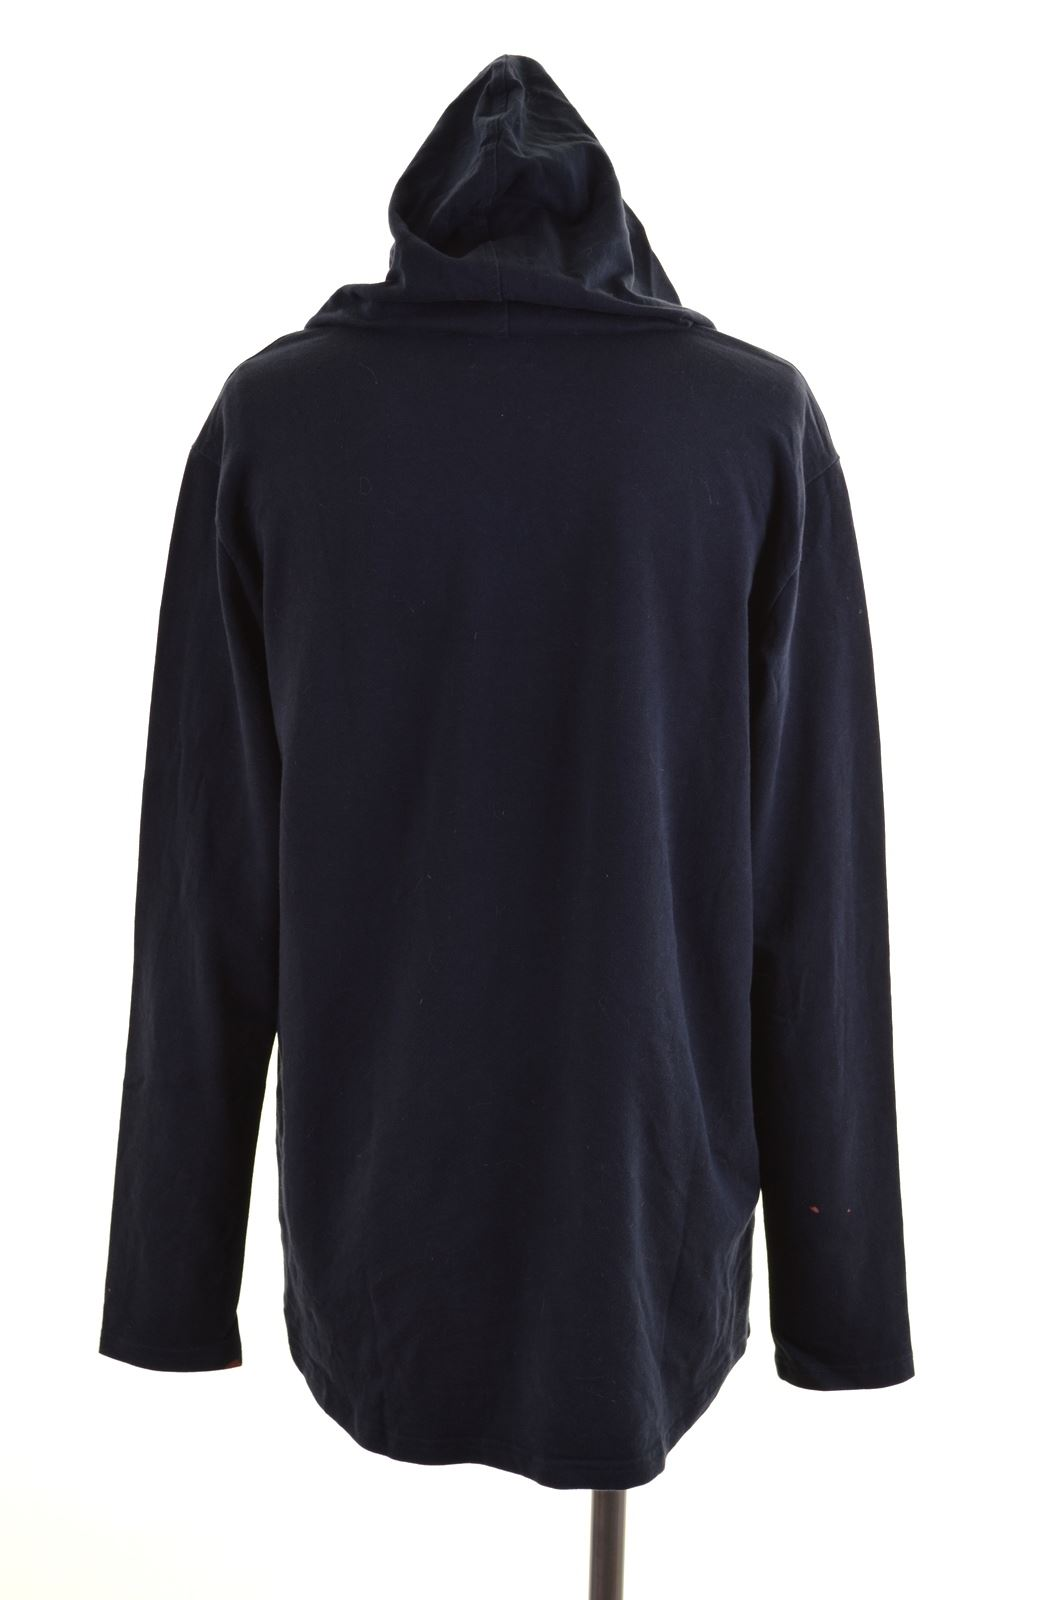 CONVERSE Womens Hoodie Jumper Size 14 Large Navy Blue Cotton FD17  a9232706ff